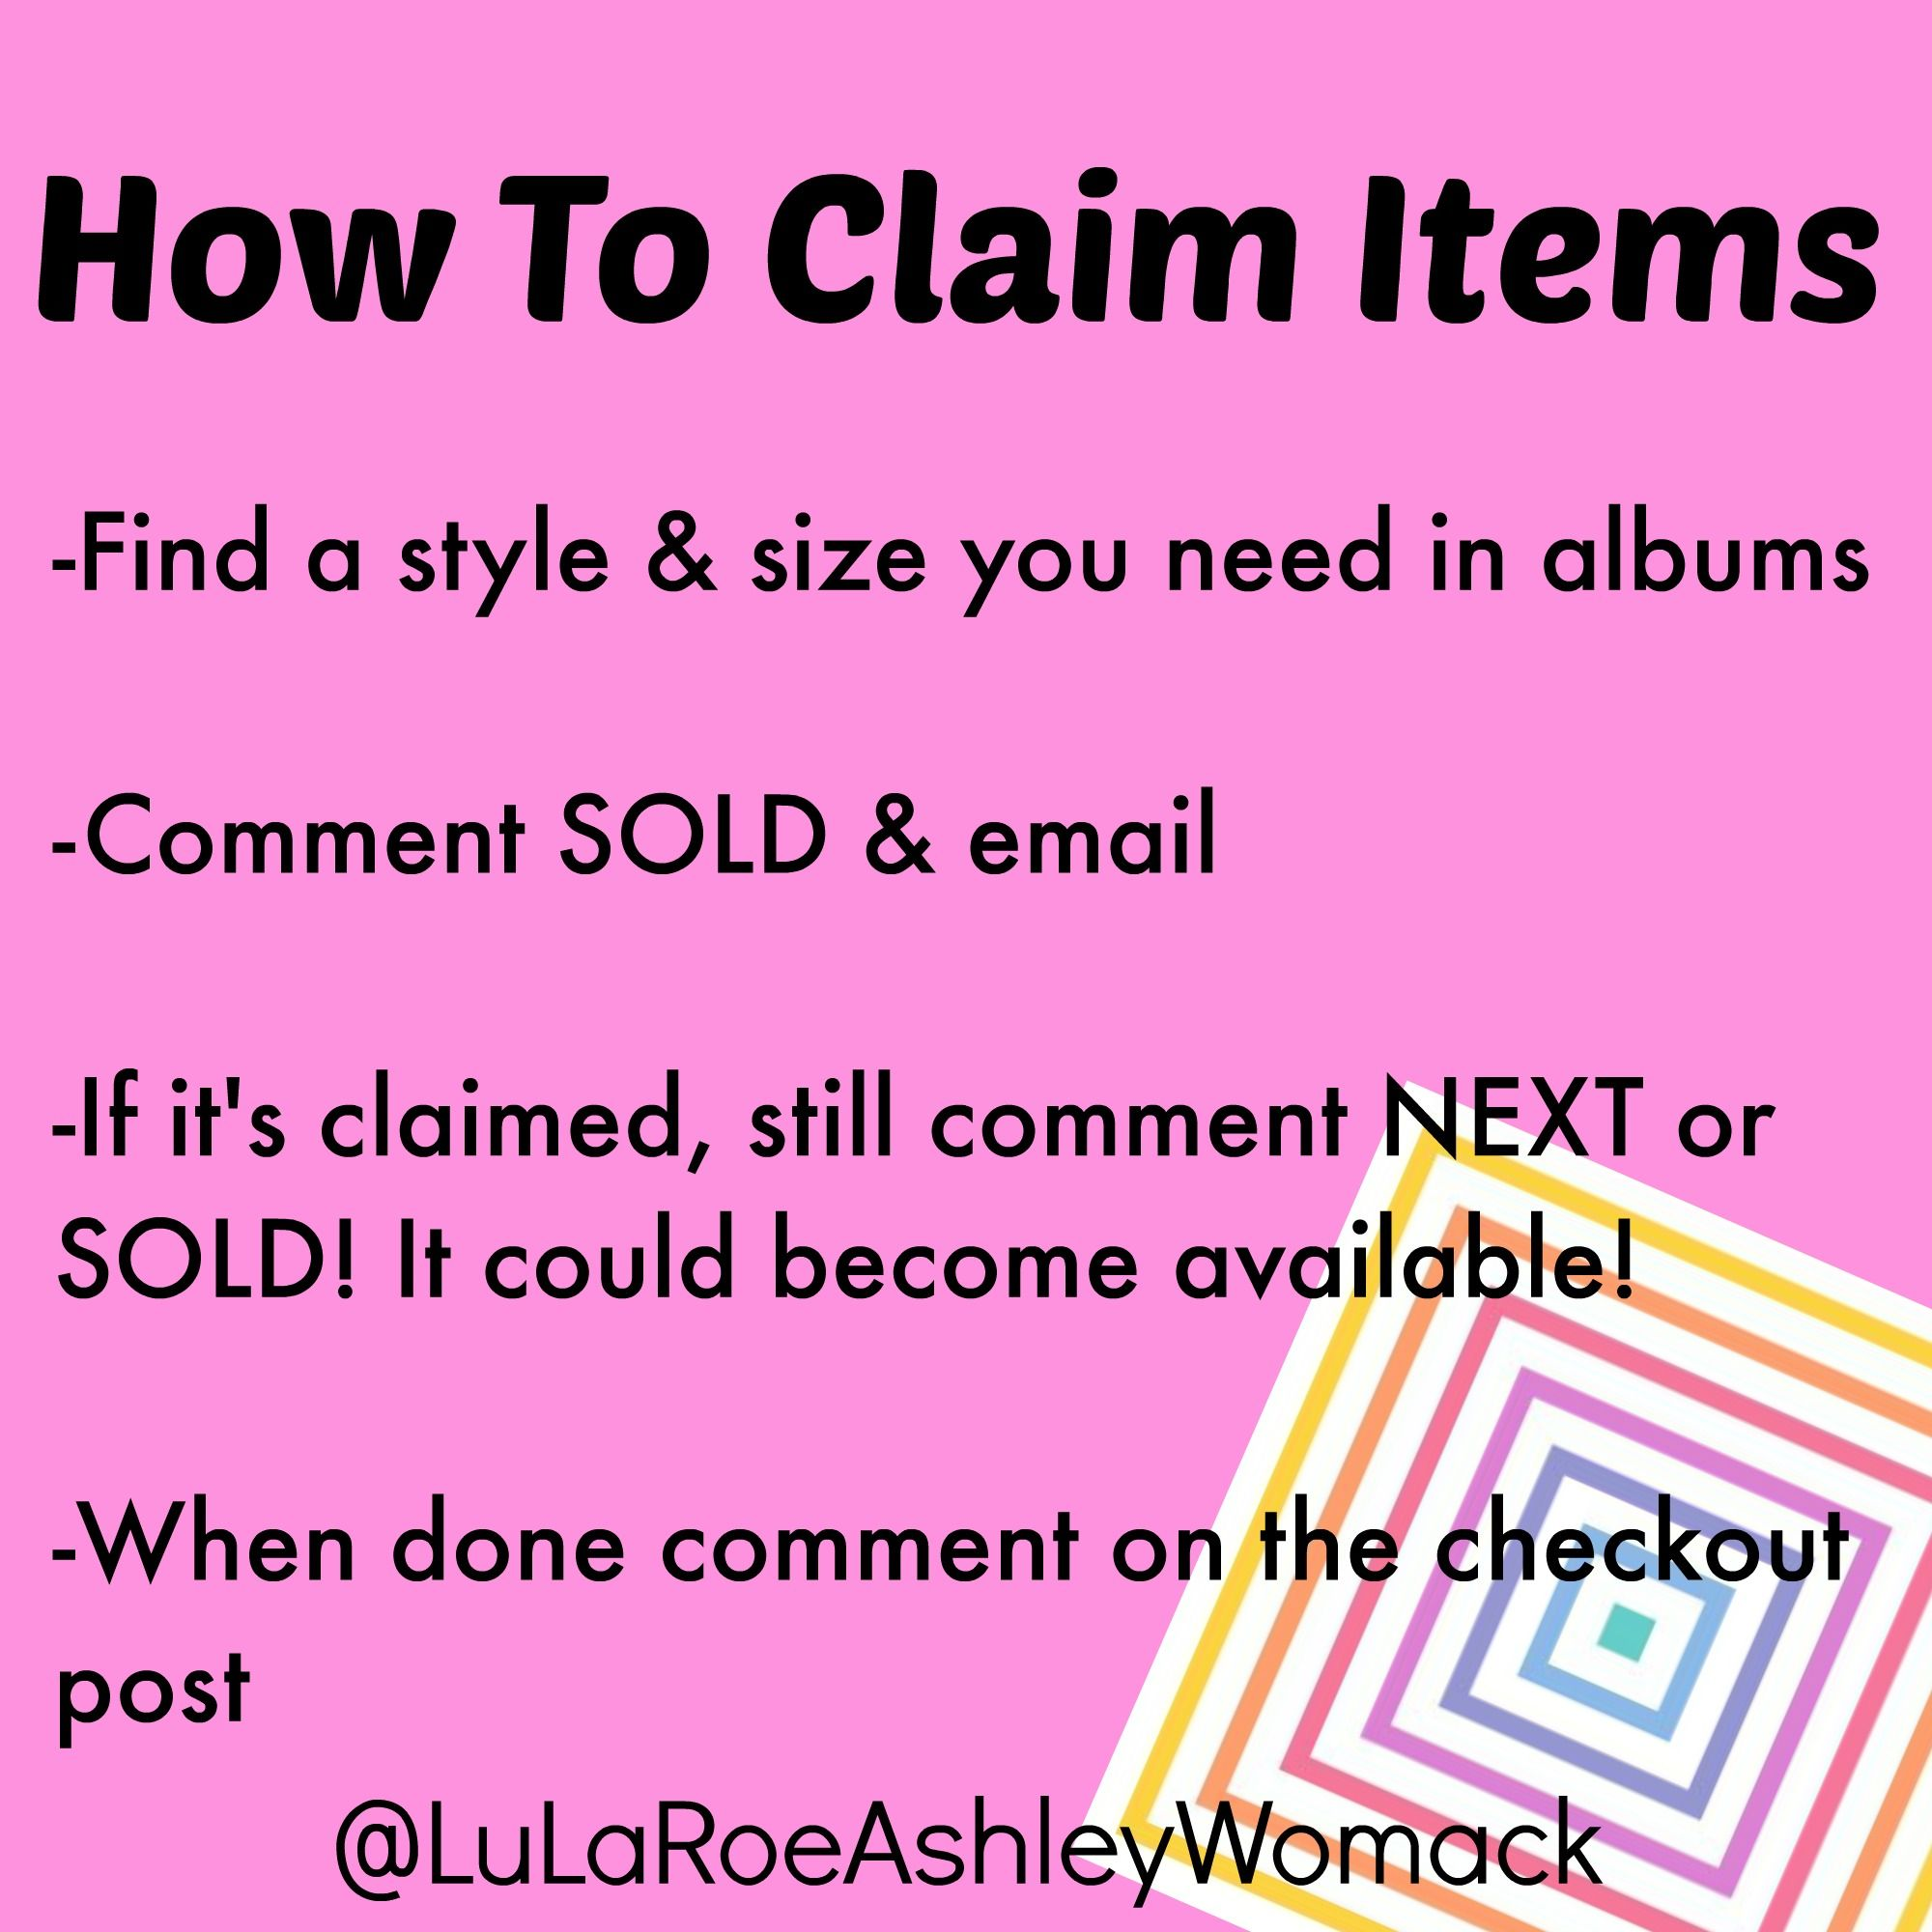 How to claim items during a LuLaRoe Facebook pop-up party!